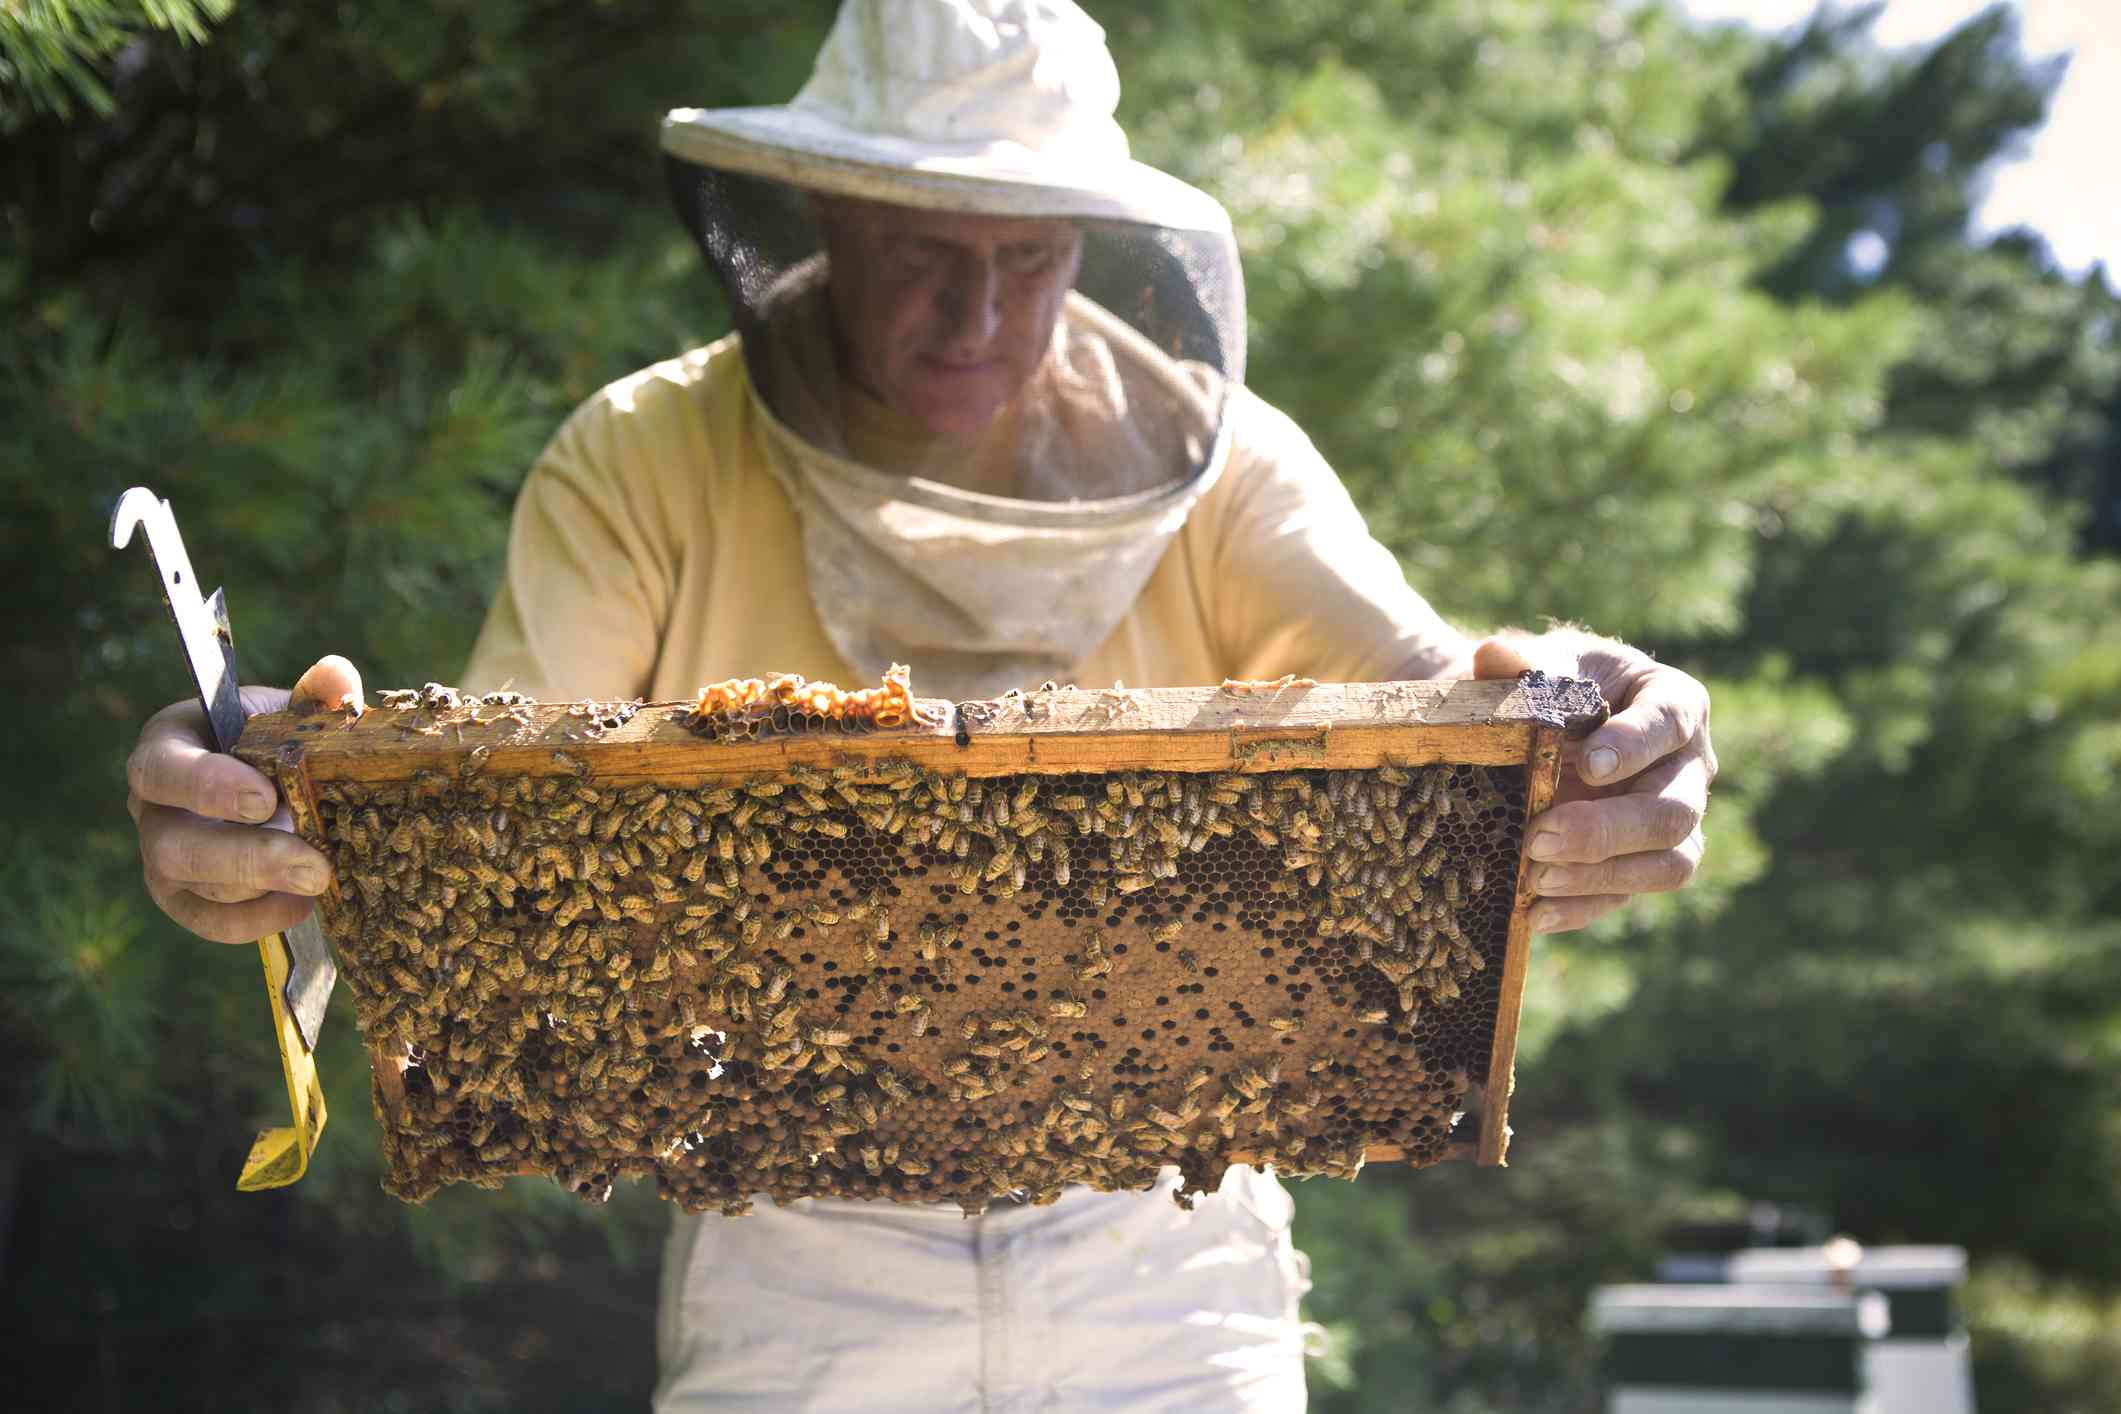 beekeeper inspecting movable frame hives